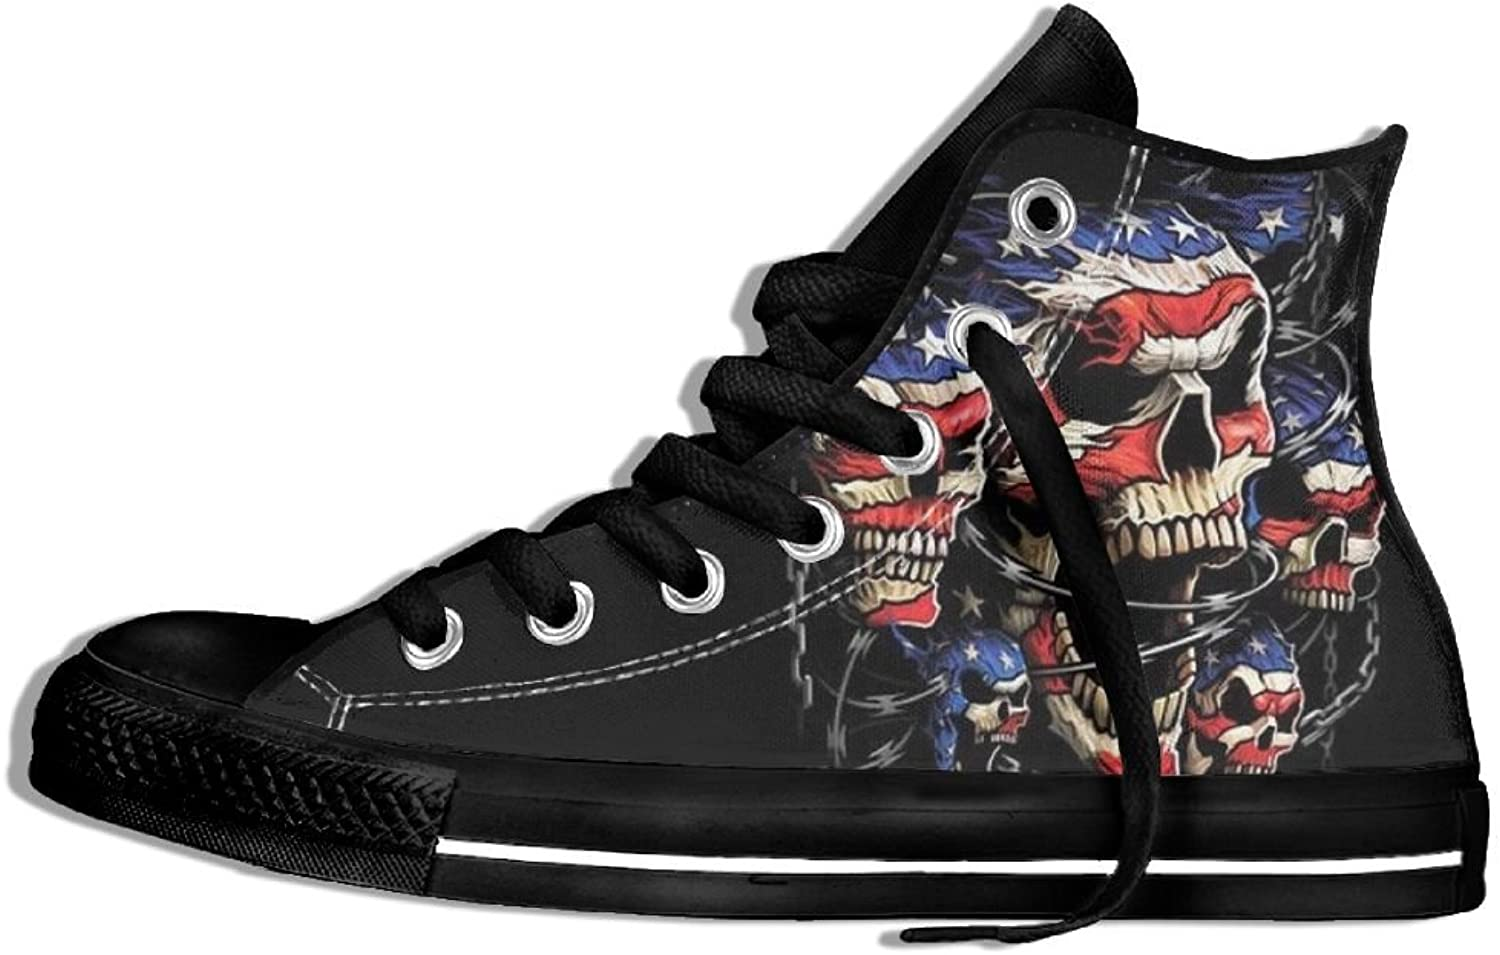 Unisex High Top Sneakers shoes America Skull Flag Lace Up Anti-slip Canvas Casual Sports Trainers shoes